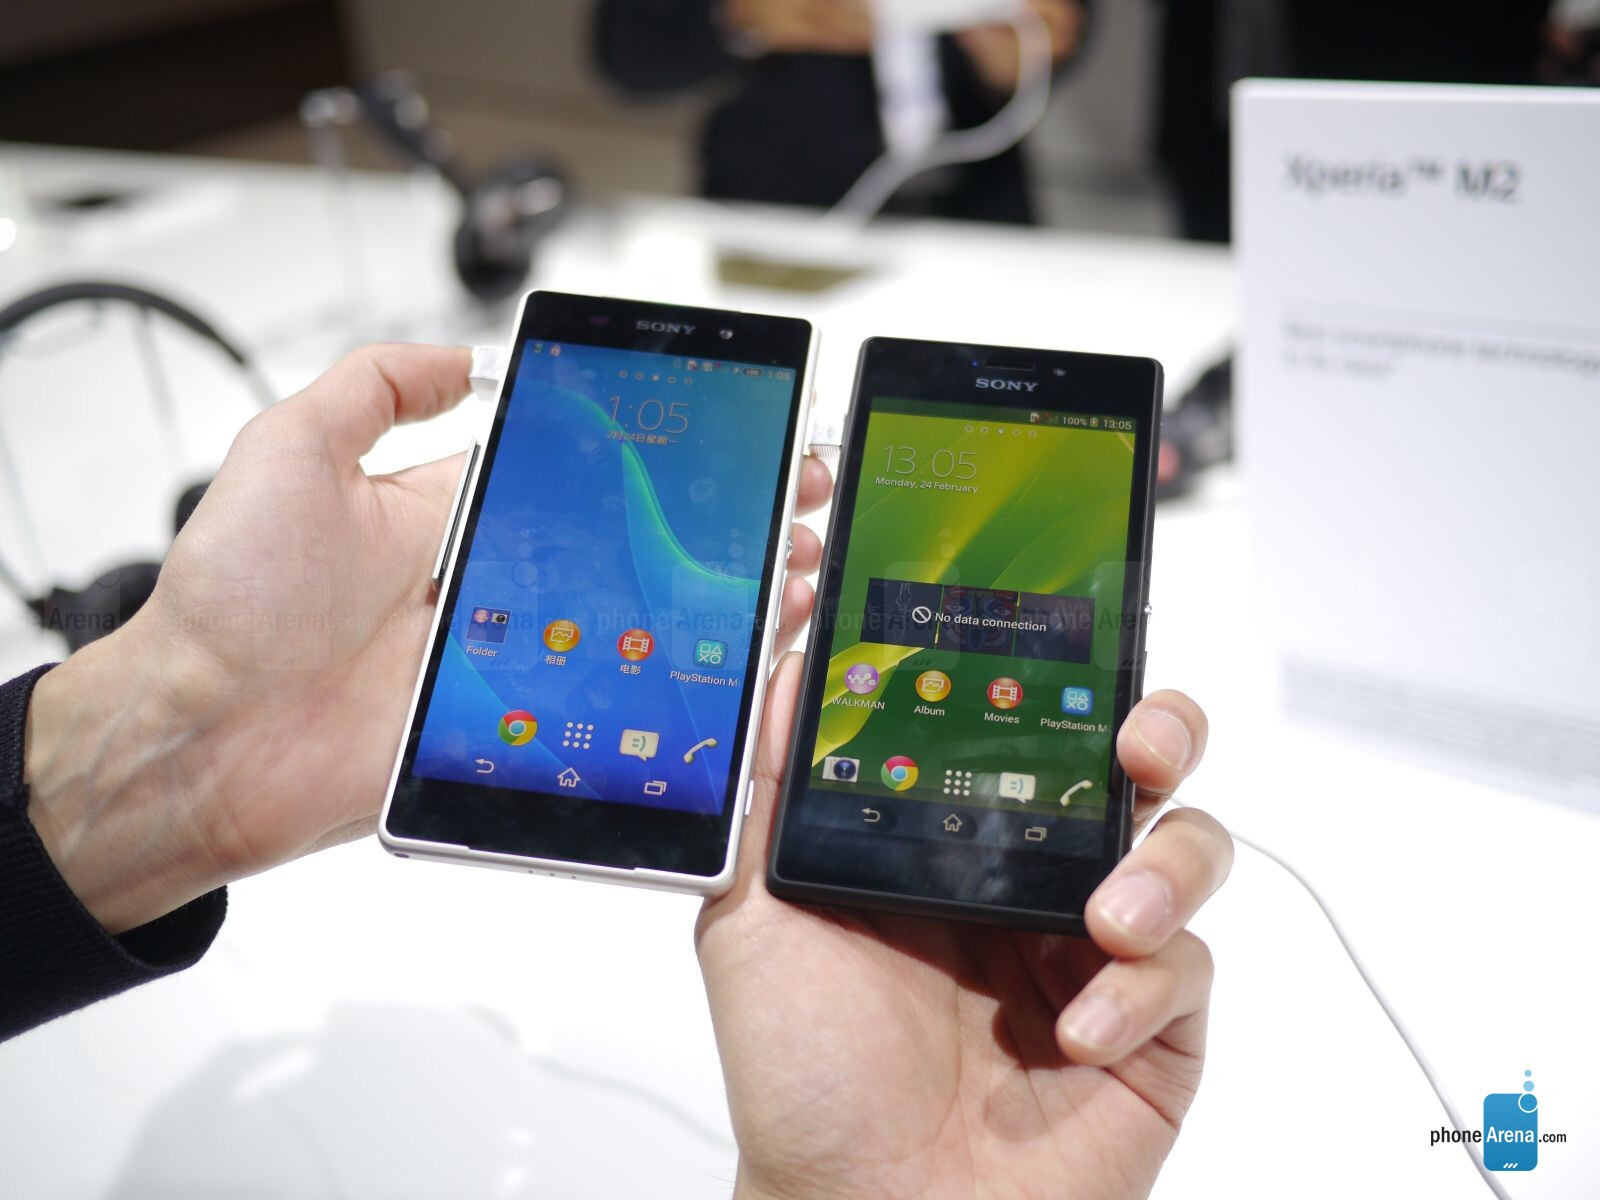 Z2 on the left, M2 on the right